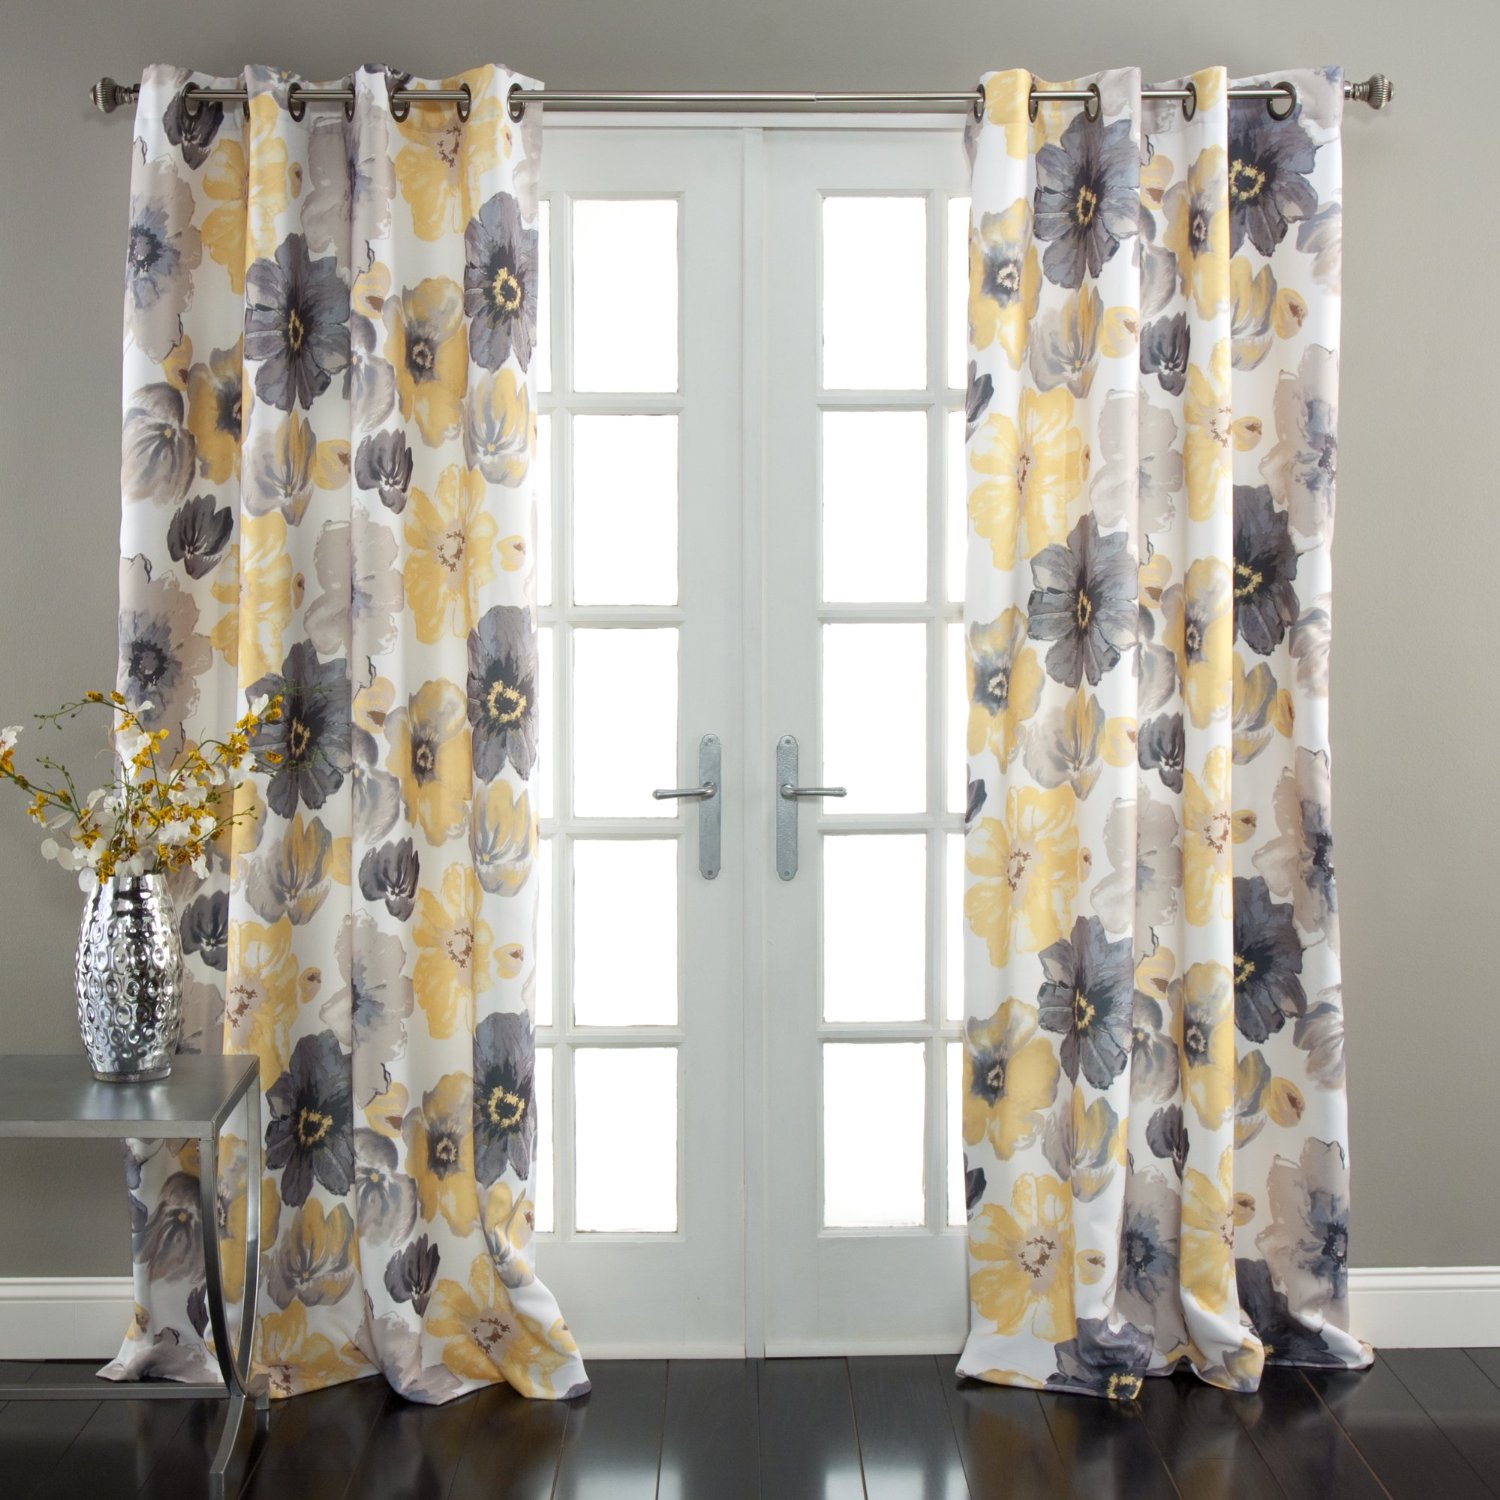 Ttup Leah Window Curtain Panel Set Of 2 84 X 52 Yellow Gray Fast Shipping Brand Lush Decor